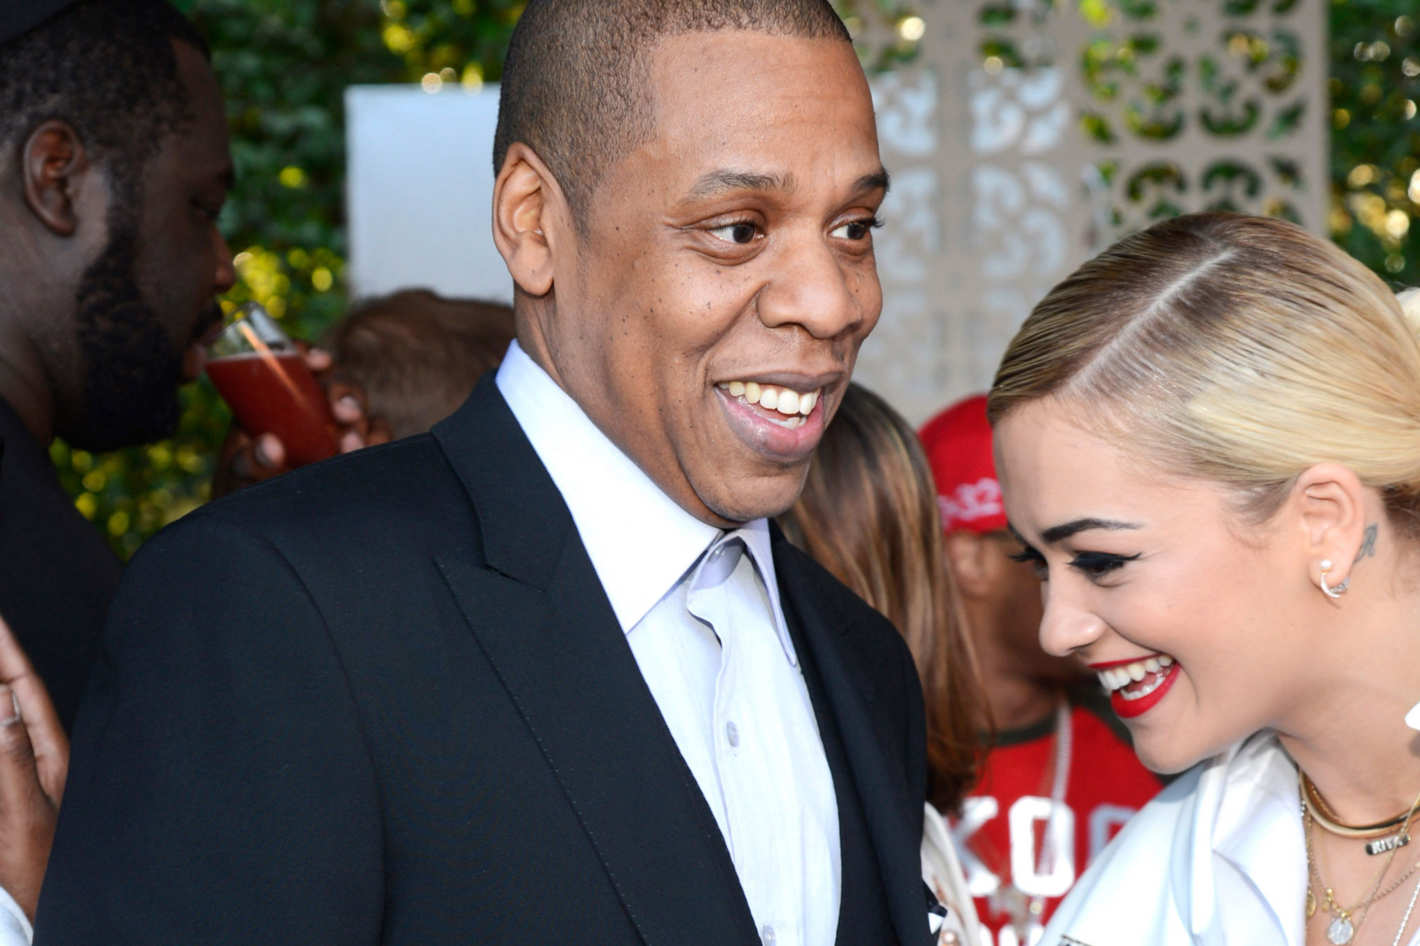 ROC NATION: Singer Rita Ora says she feared for her life during legal battle with record label